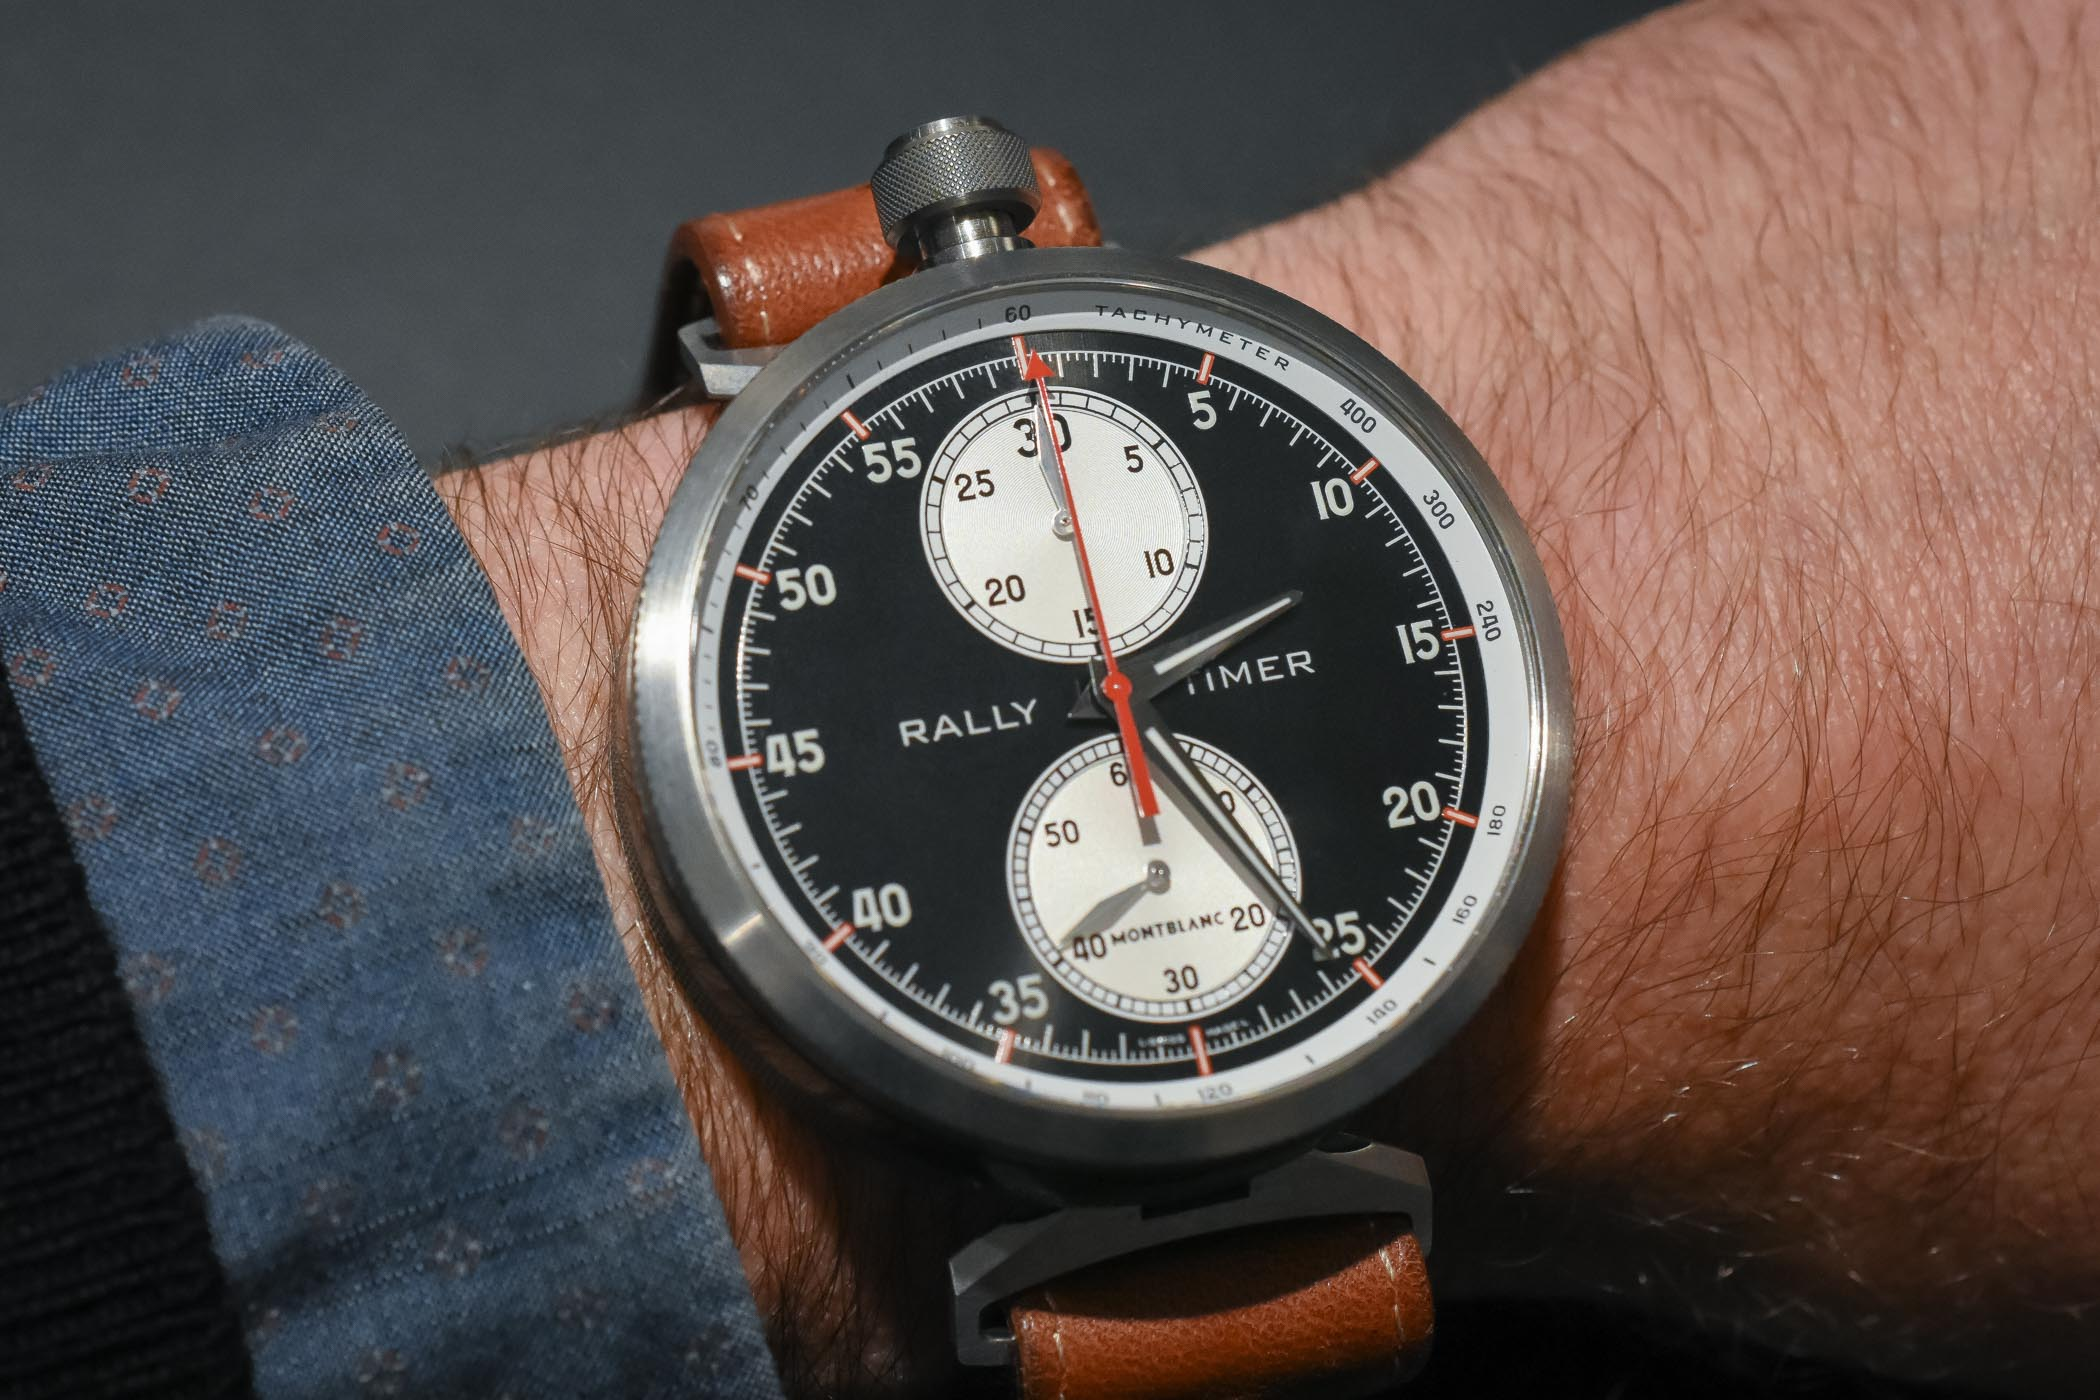 Montblanc Timewalker Rally Timer Chronograph Limited